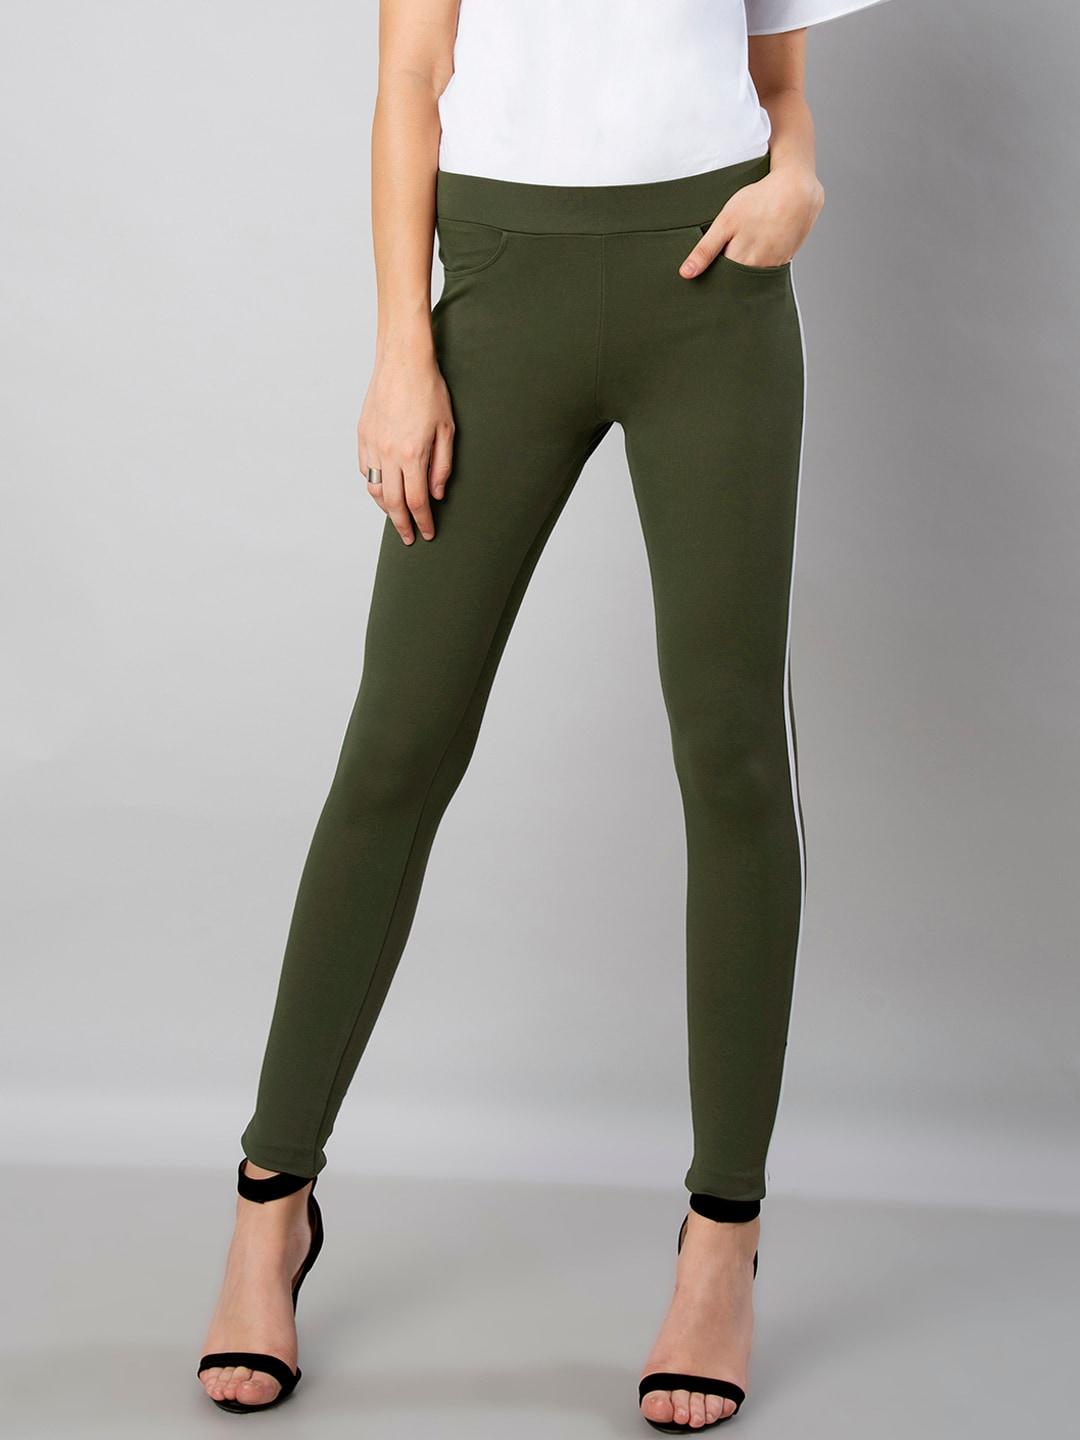 aba6bf58b4b2d4 Buy Marks & Spencer Women Olive Green Flexi Fit Solid Cropped ...